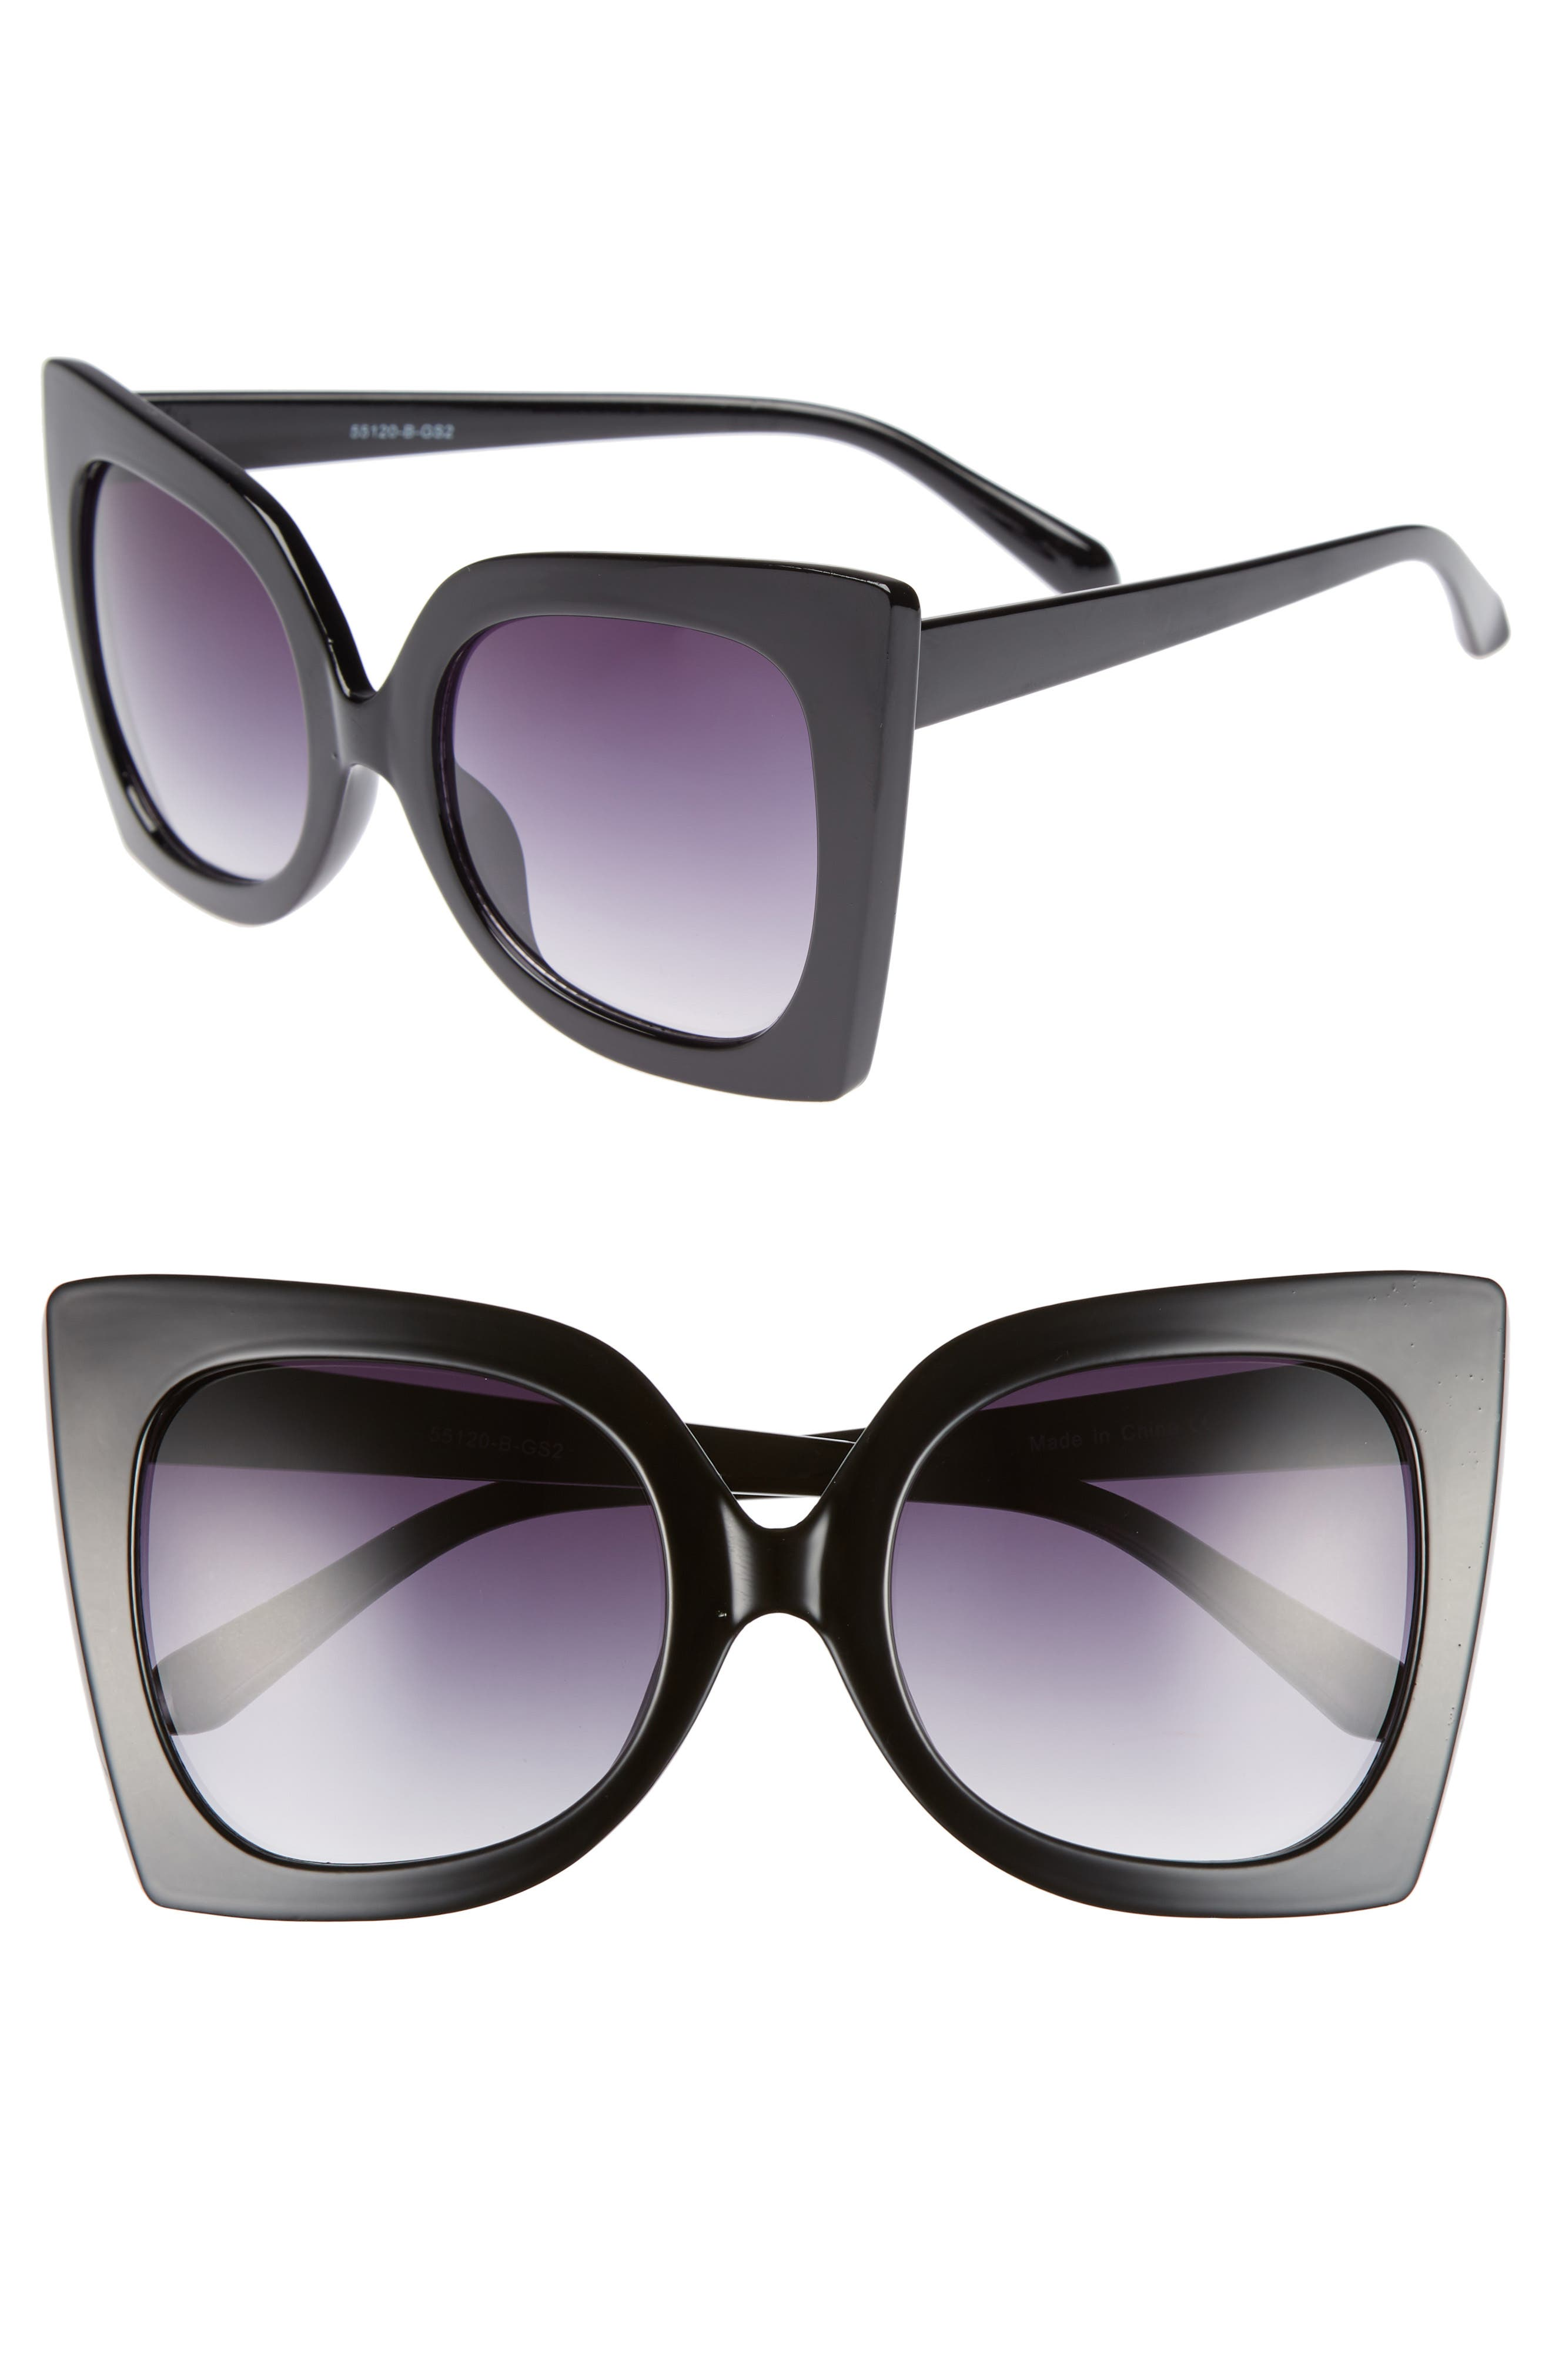 56mm Exaggerated Square Sunglasses,                         Main,                         color, 001